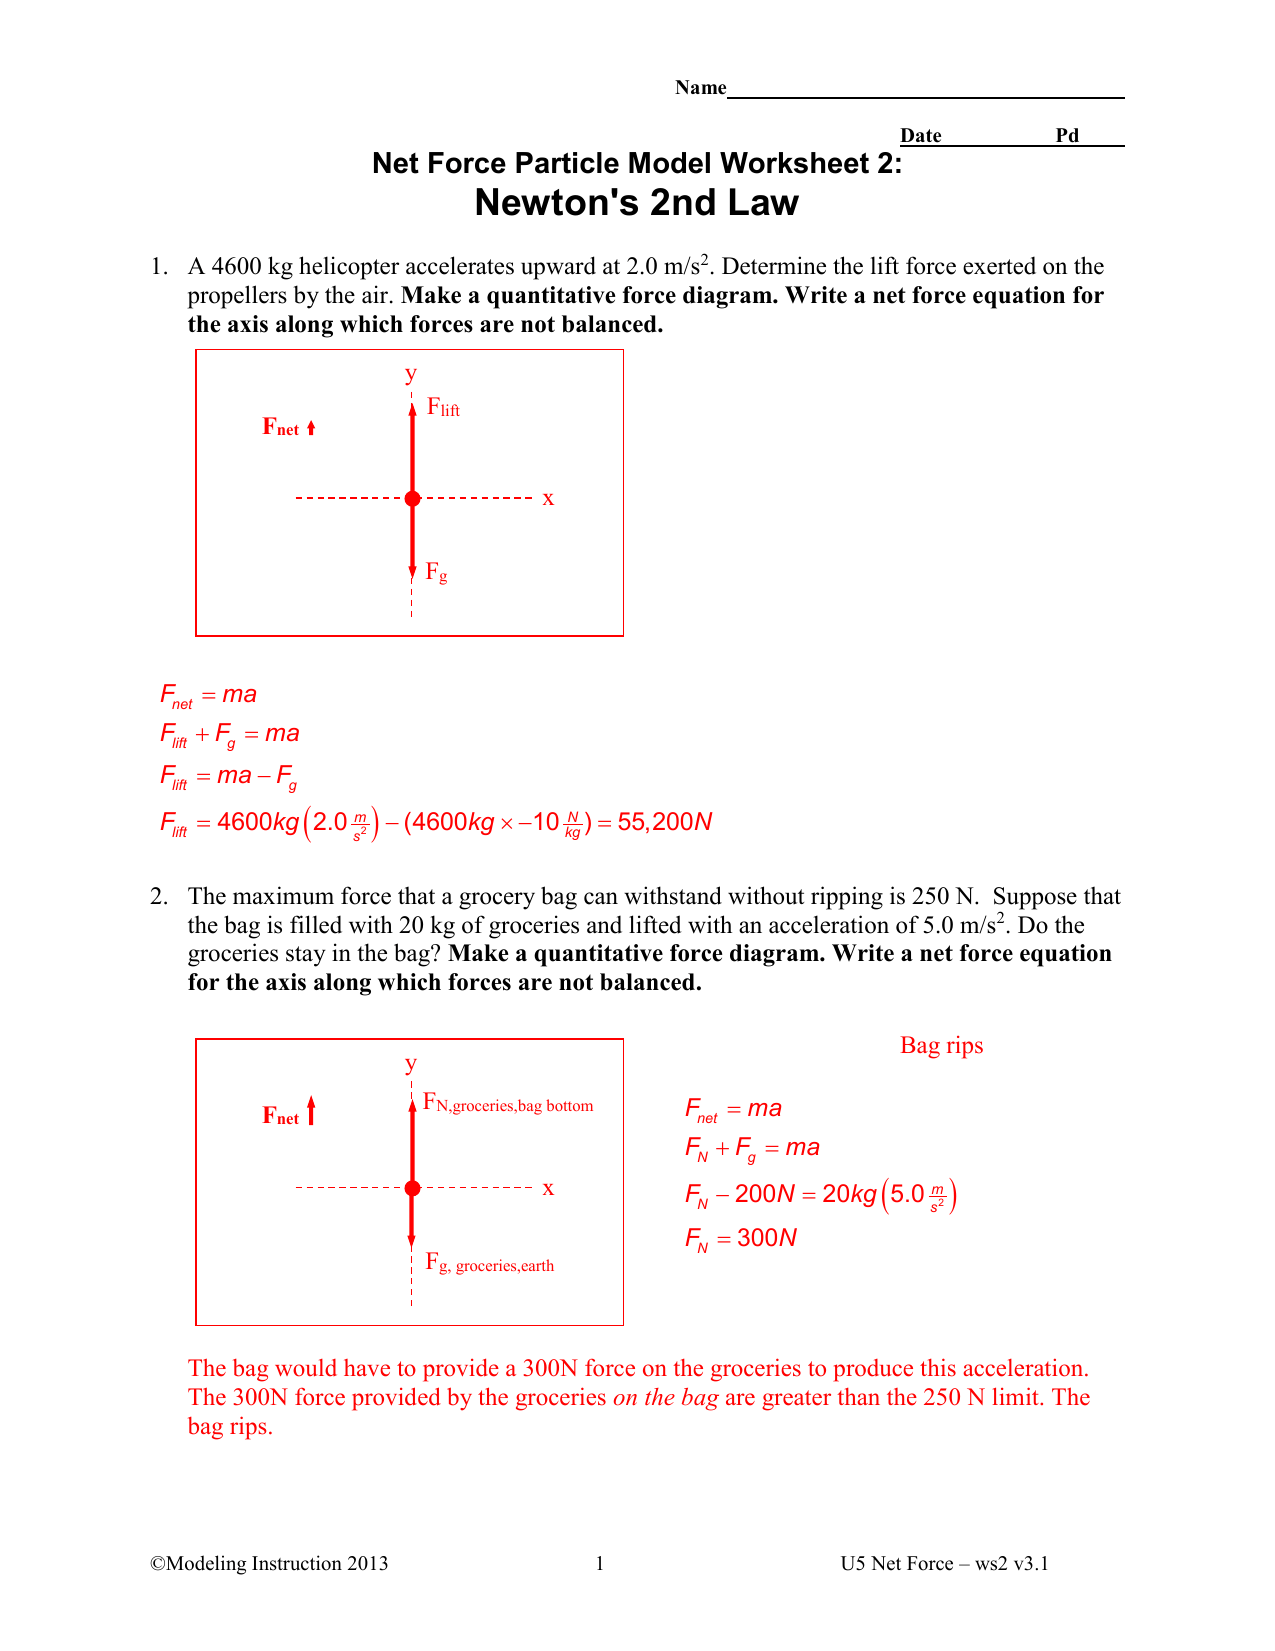 Net Force Worksheet Answers